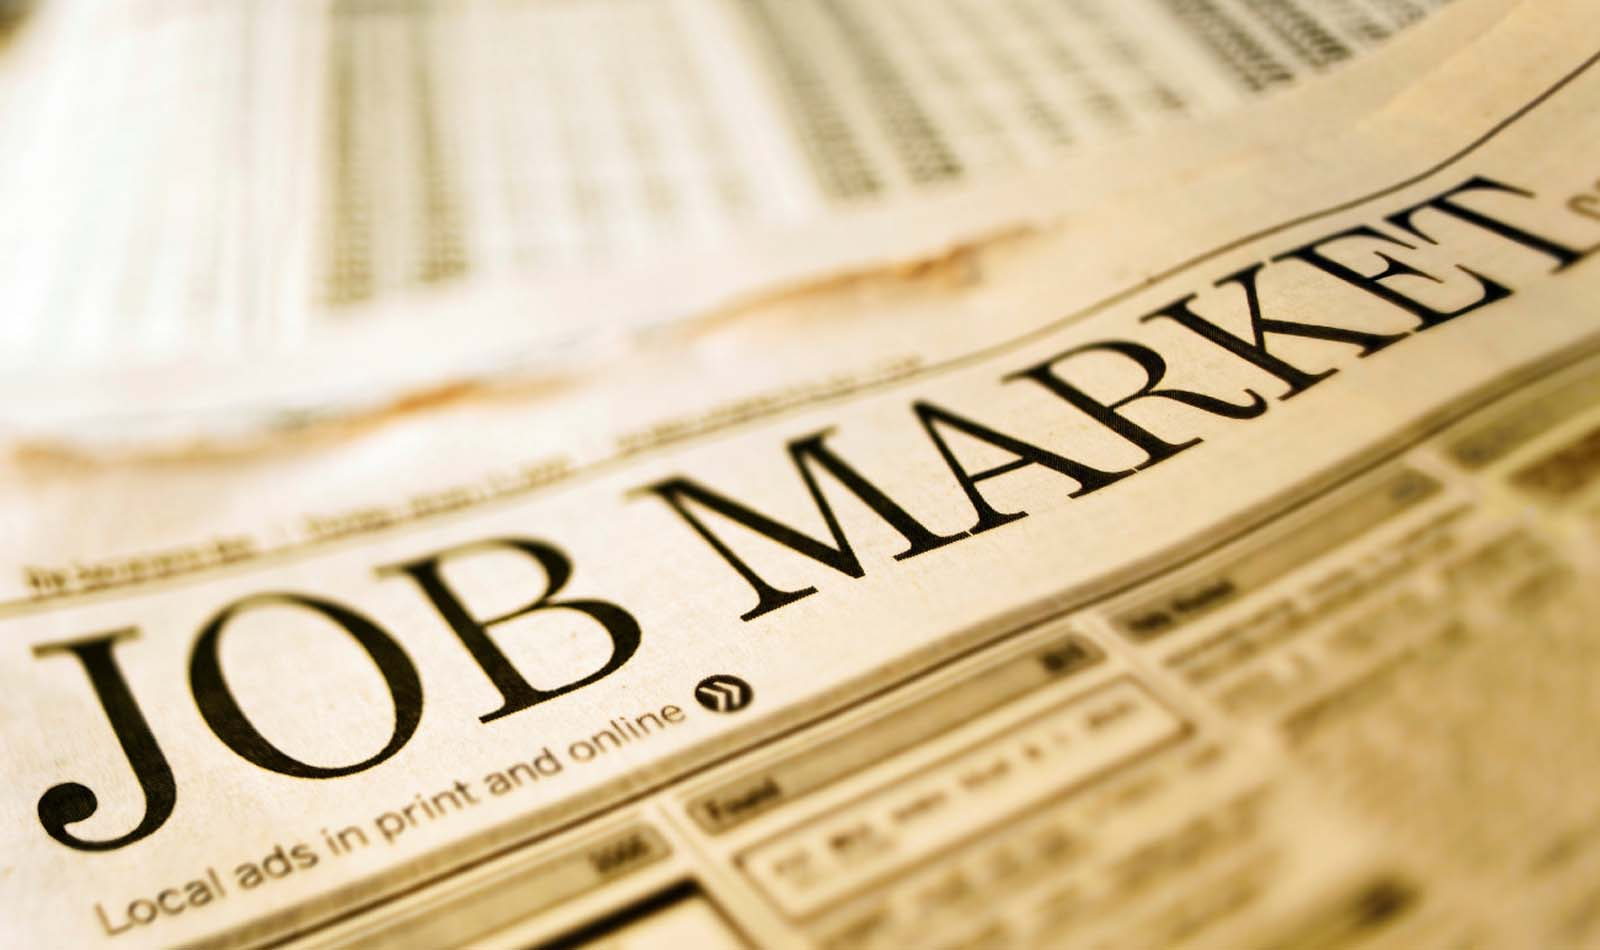 nterior_Masthead_1600x950_Ken_background-employment.jpg